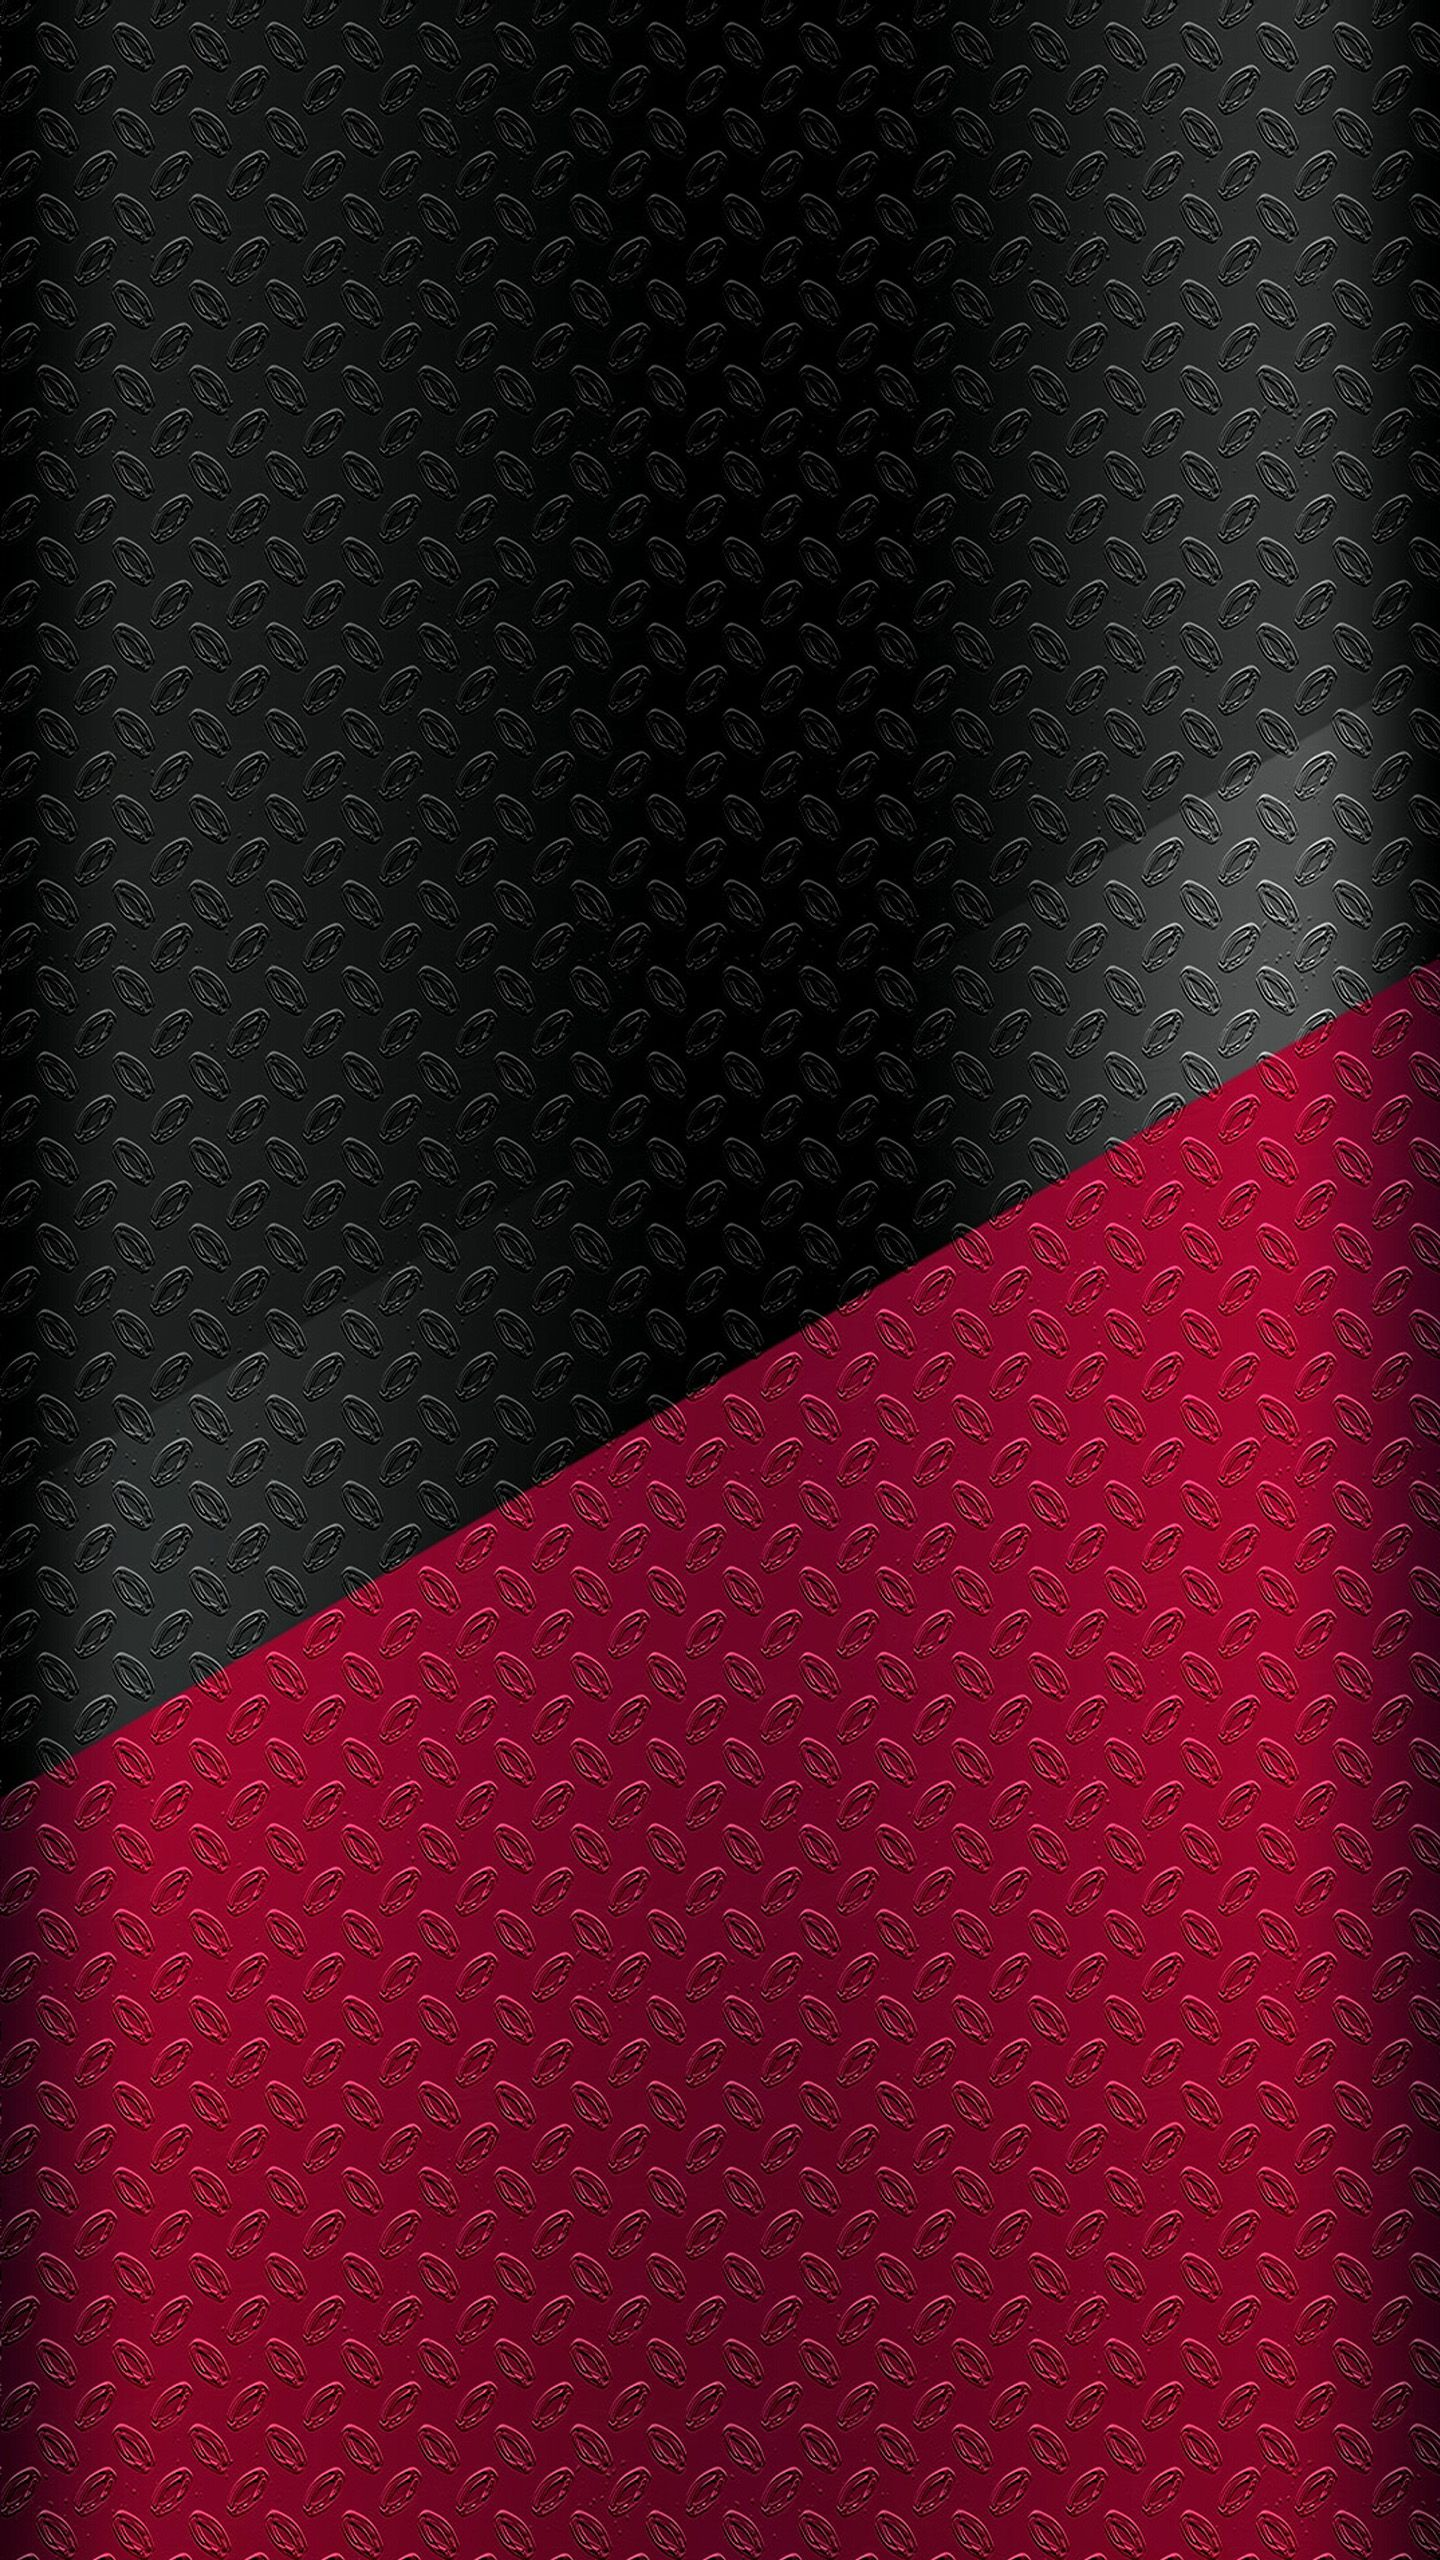 Dark S7 Edge Wallpaper 06 Black And Red Metal Texture